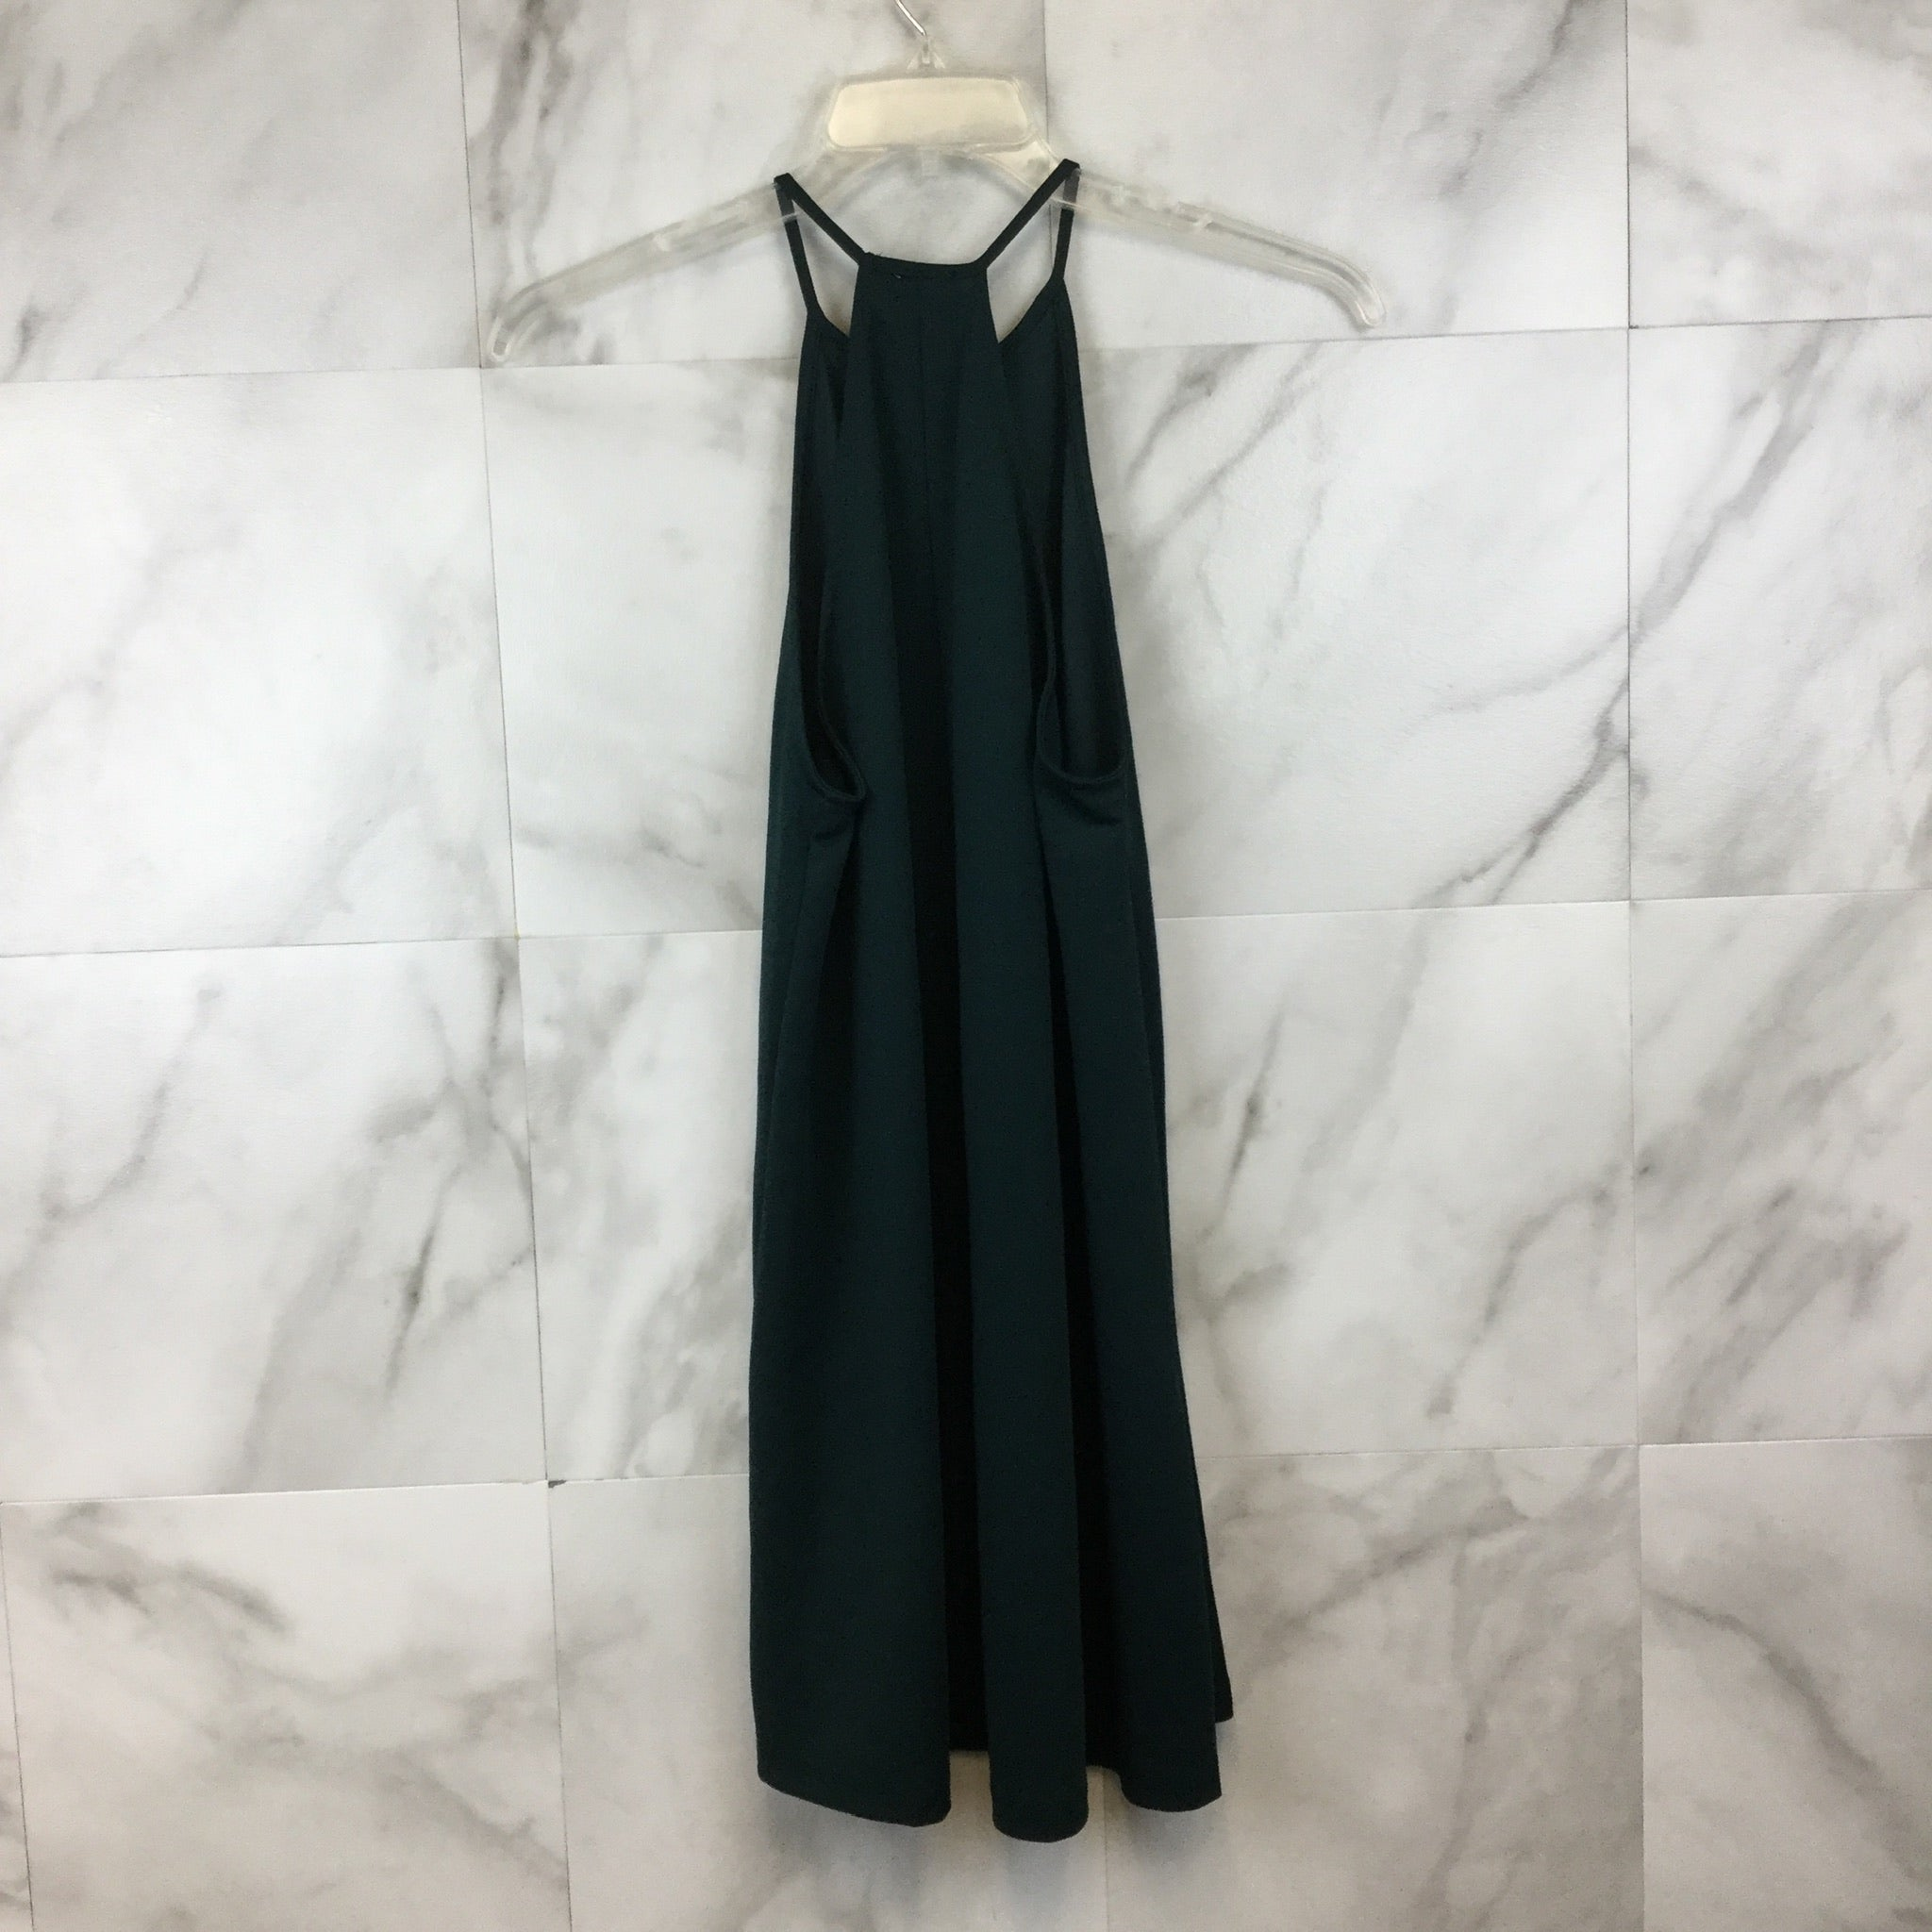 Zara Halter Dress- size S